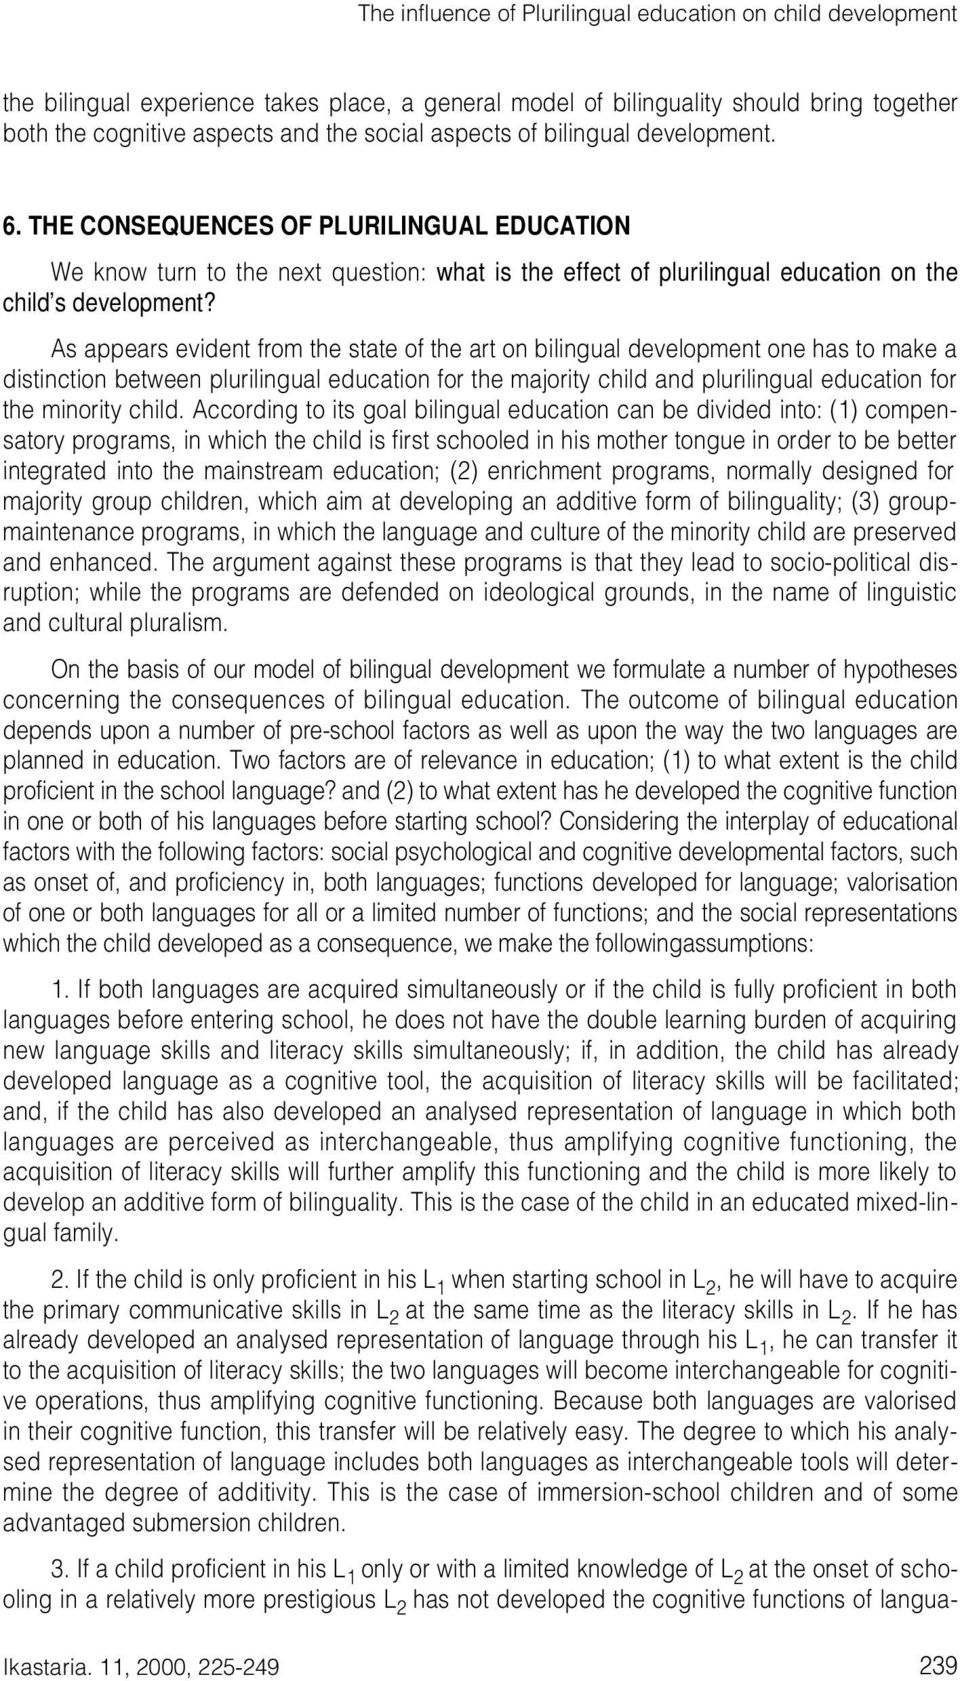 As appears evident from the state of the art on bilingual development one has to make a distinction between plurilingual education for the majority child and plurilingual education for the minority